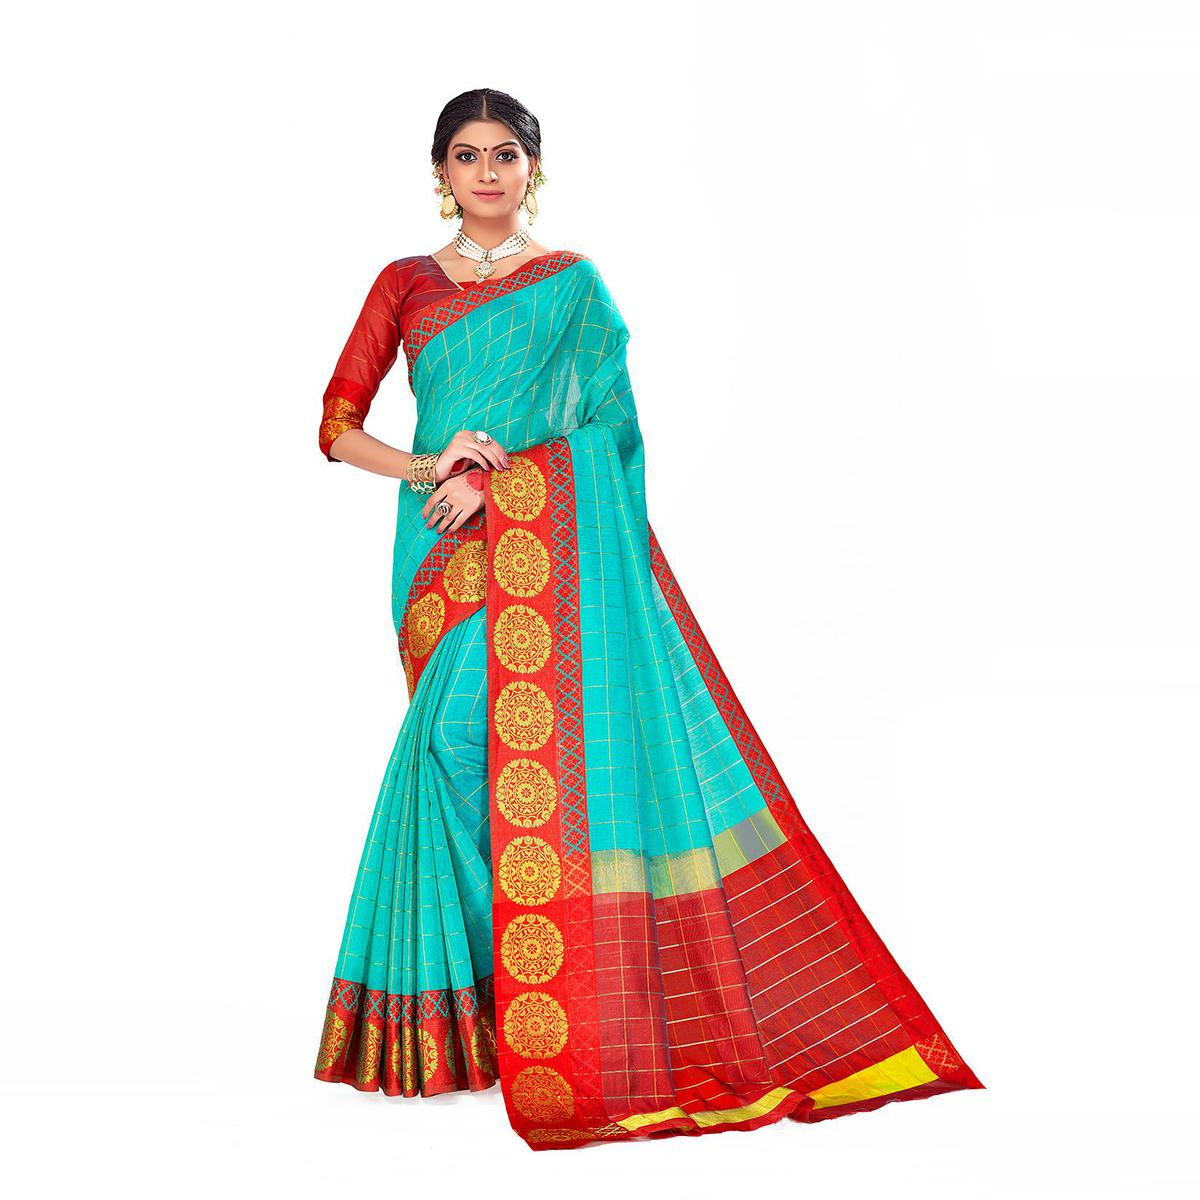 Amegh - Sky Blue Colored Festive Wear Woven Cotton Silk Saree